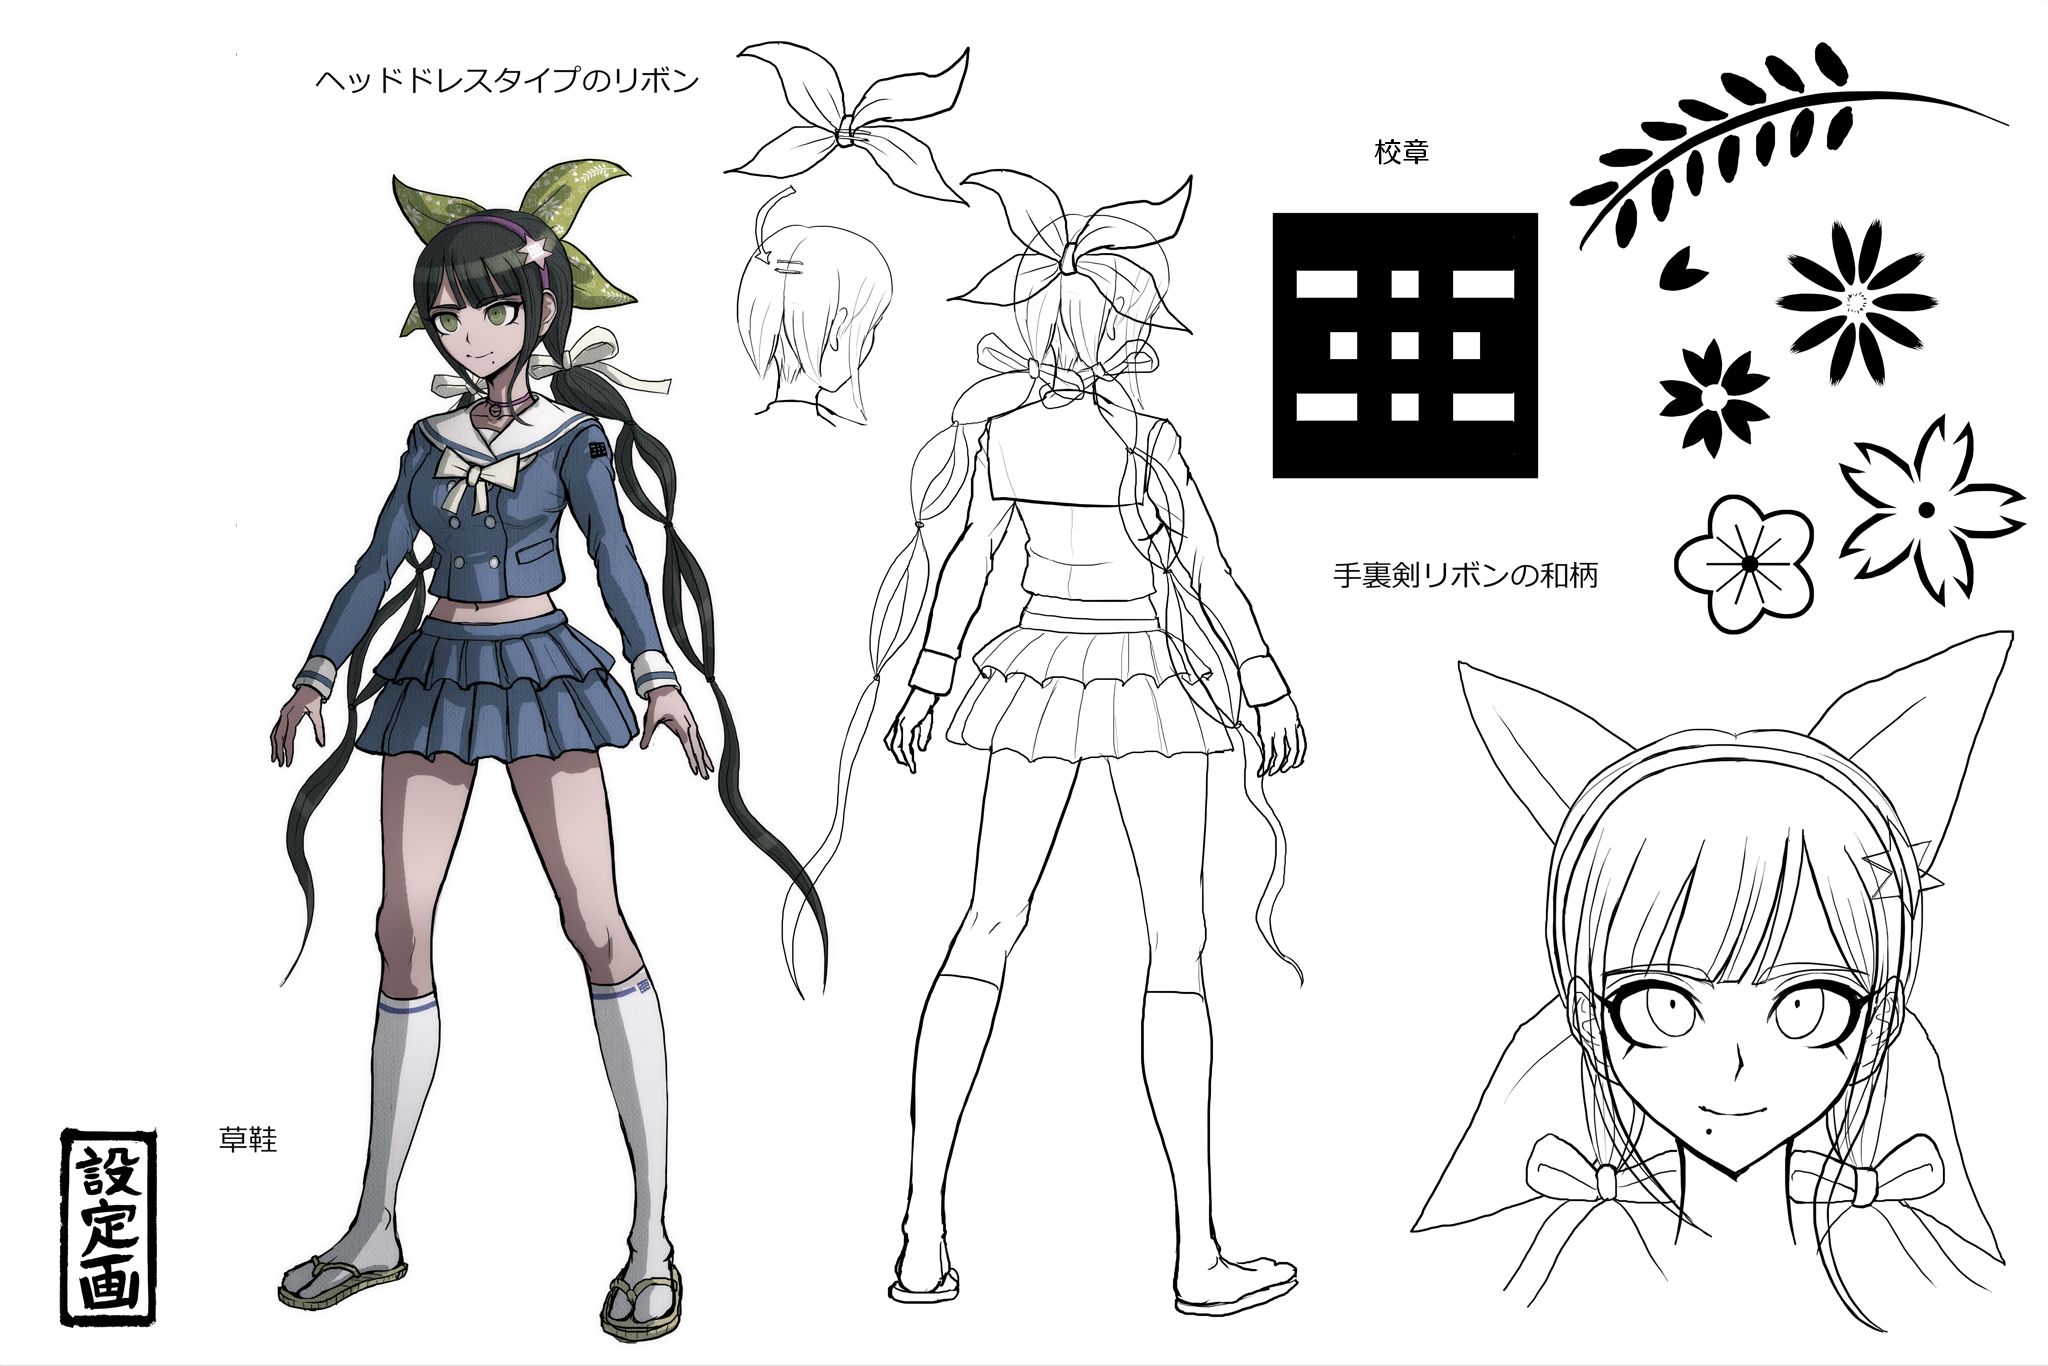 Tenko chabashira danganronpa wiki fandom powered by wikia tenko has a fair skin tone warm green eyes and long dark brown hair put into two long loose braids her hair is tied by long white ribbons a large green biocorpaavc Image collections